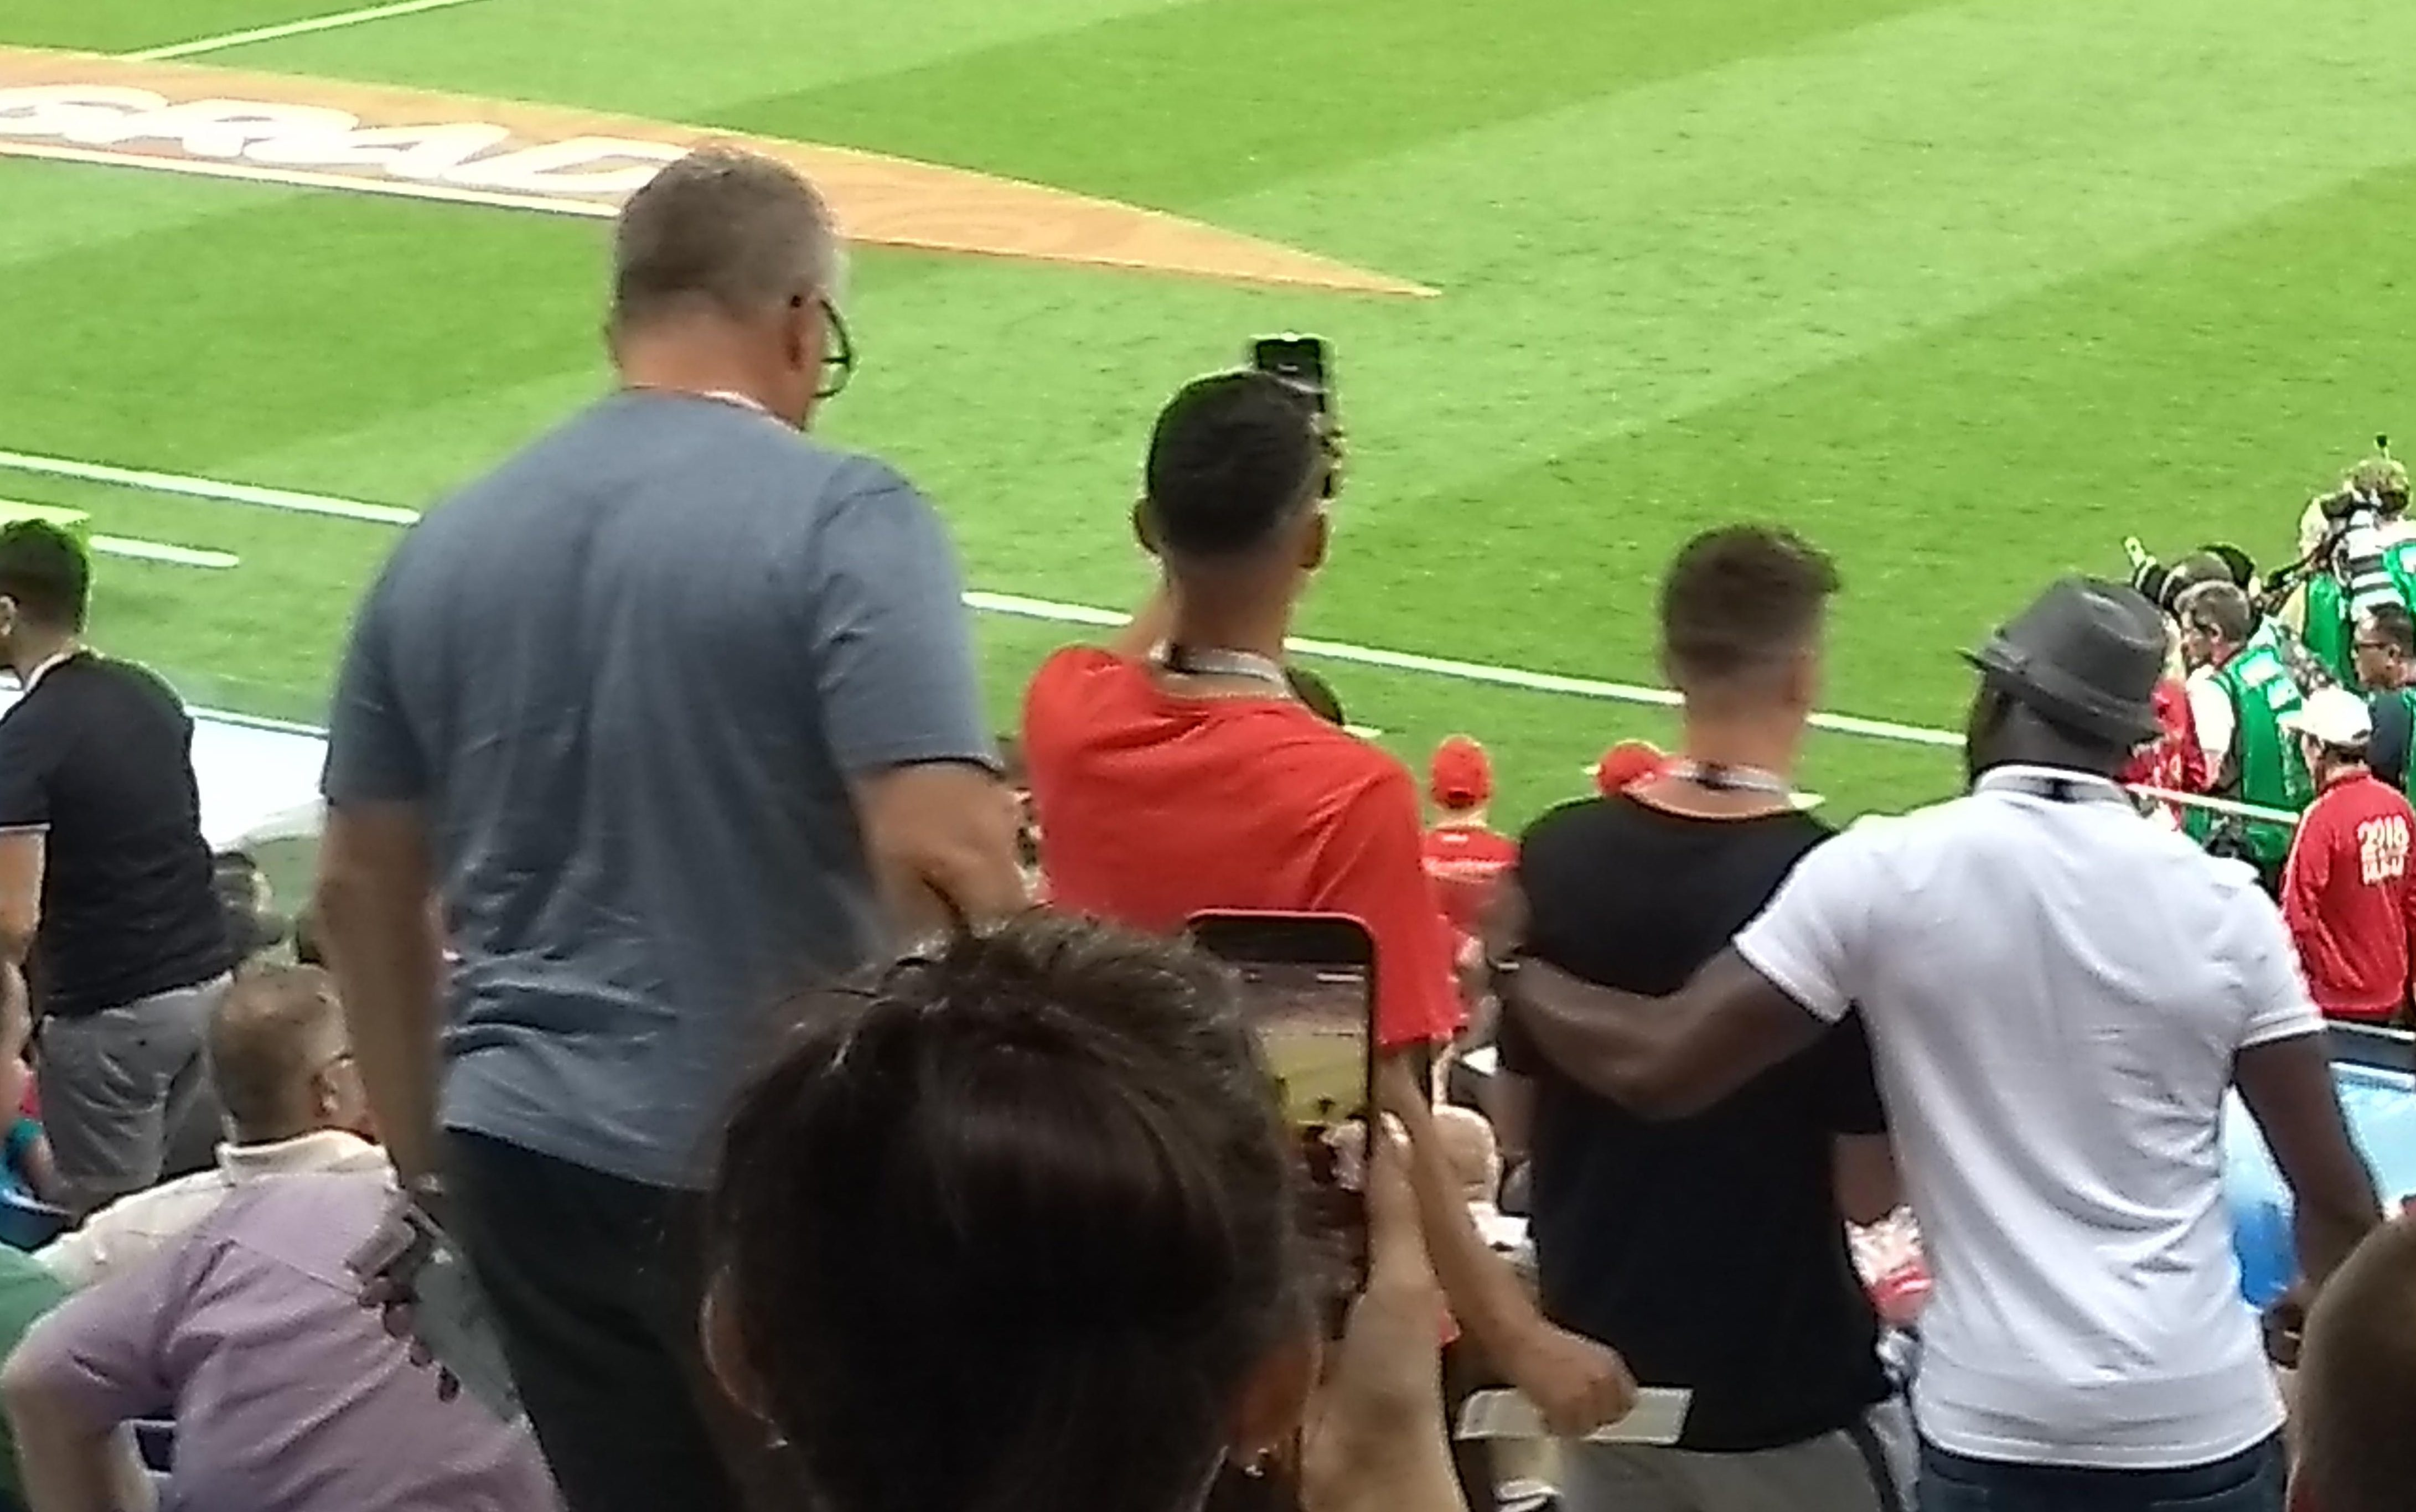 Yep, this is a picture of someone taking a picture of Phil Foden taking a picture of a football pitch